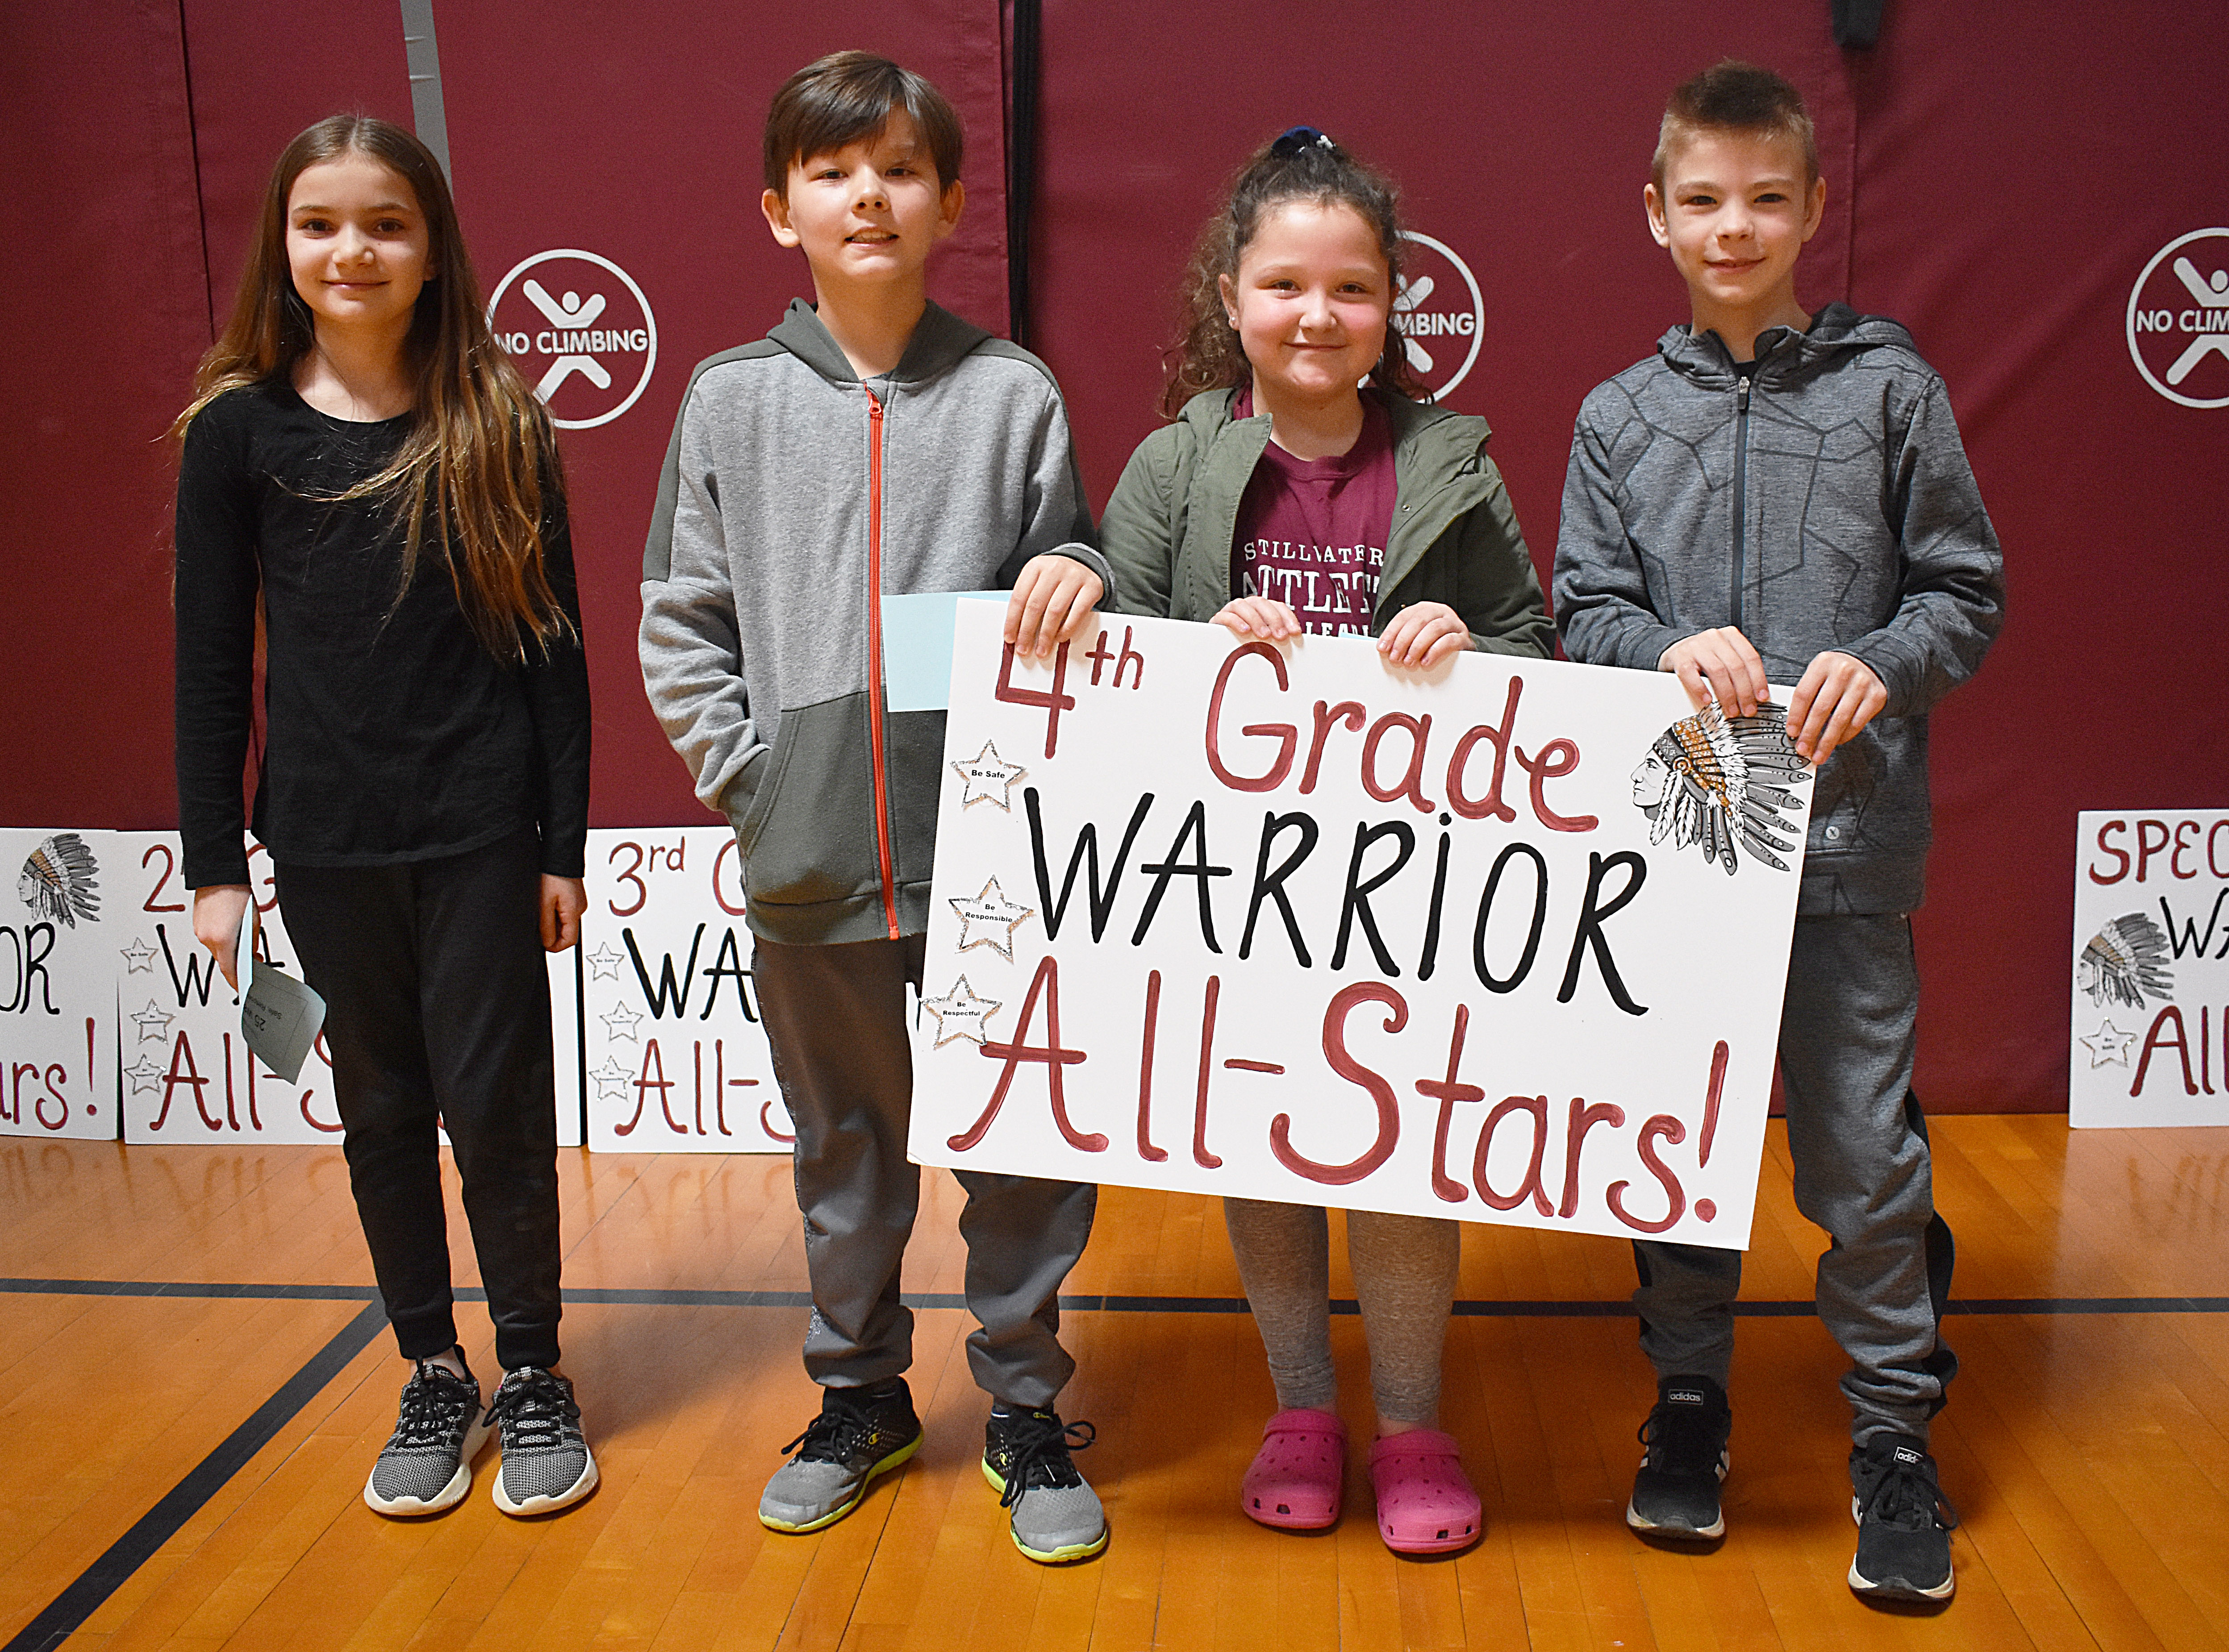 Kids standing together with fourth grade sign